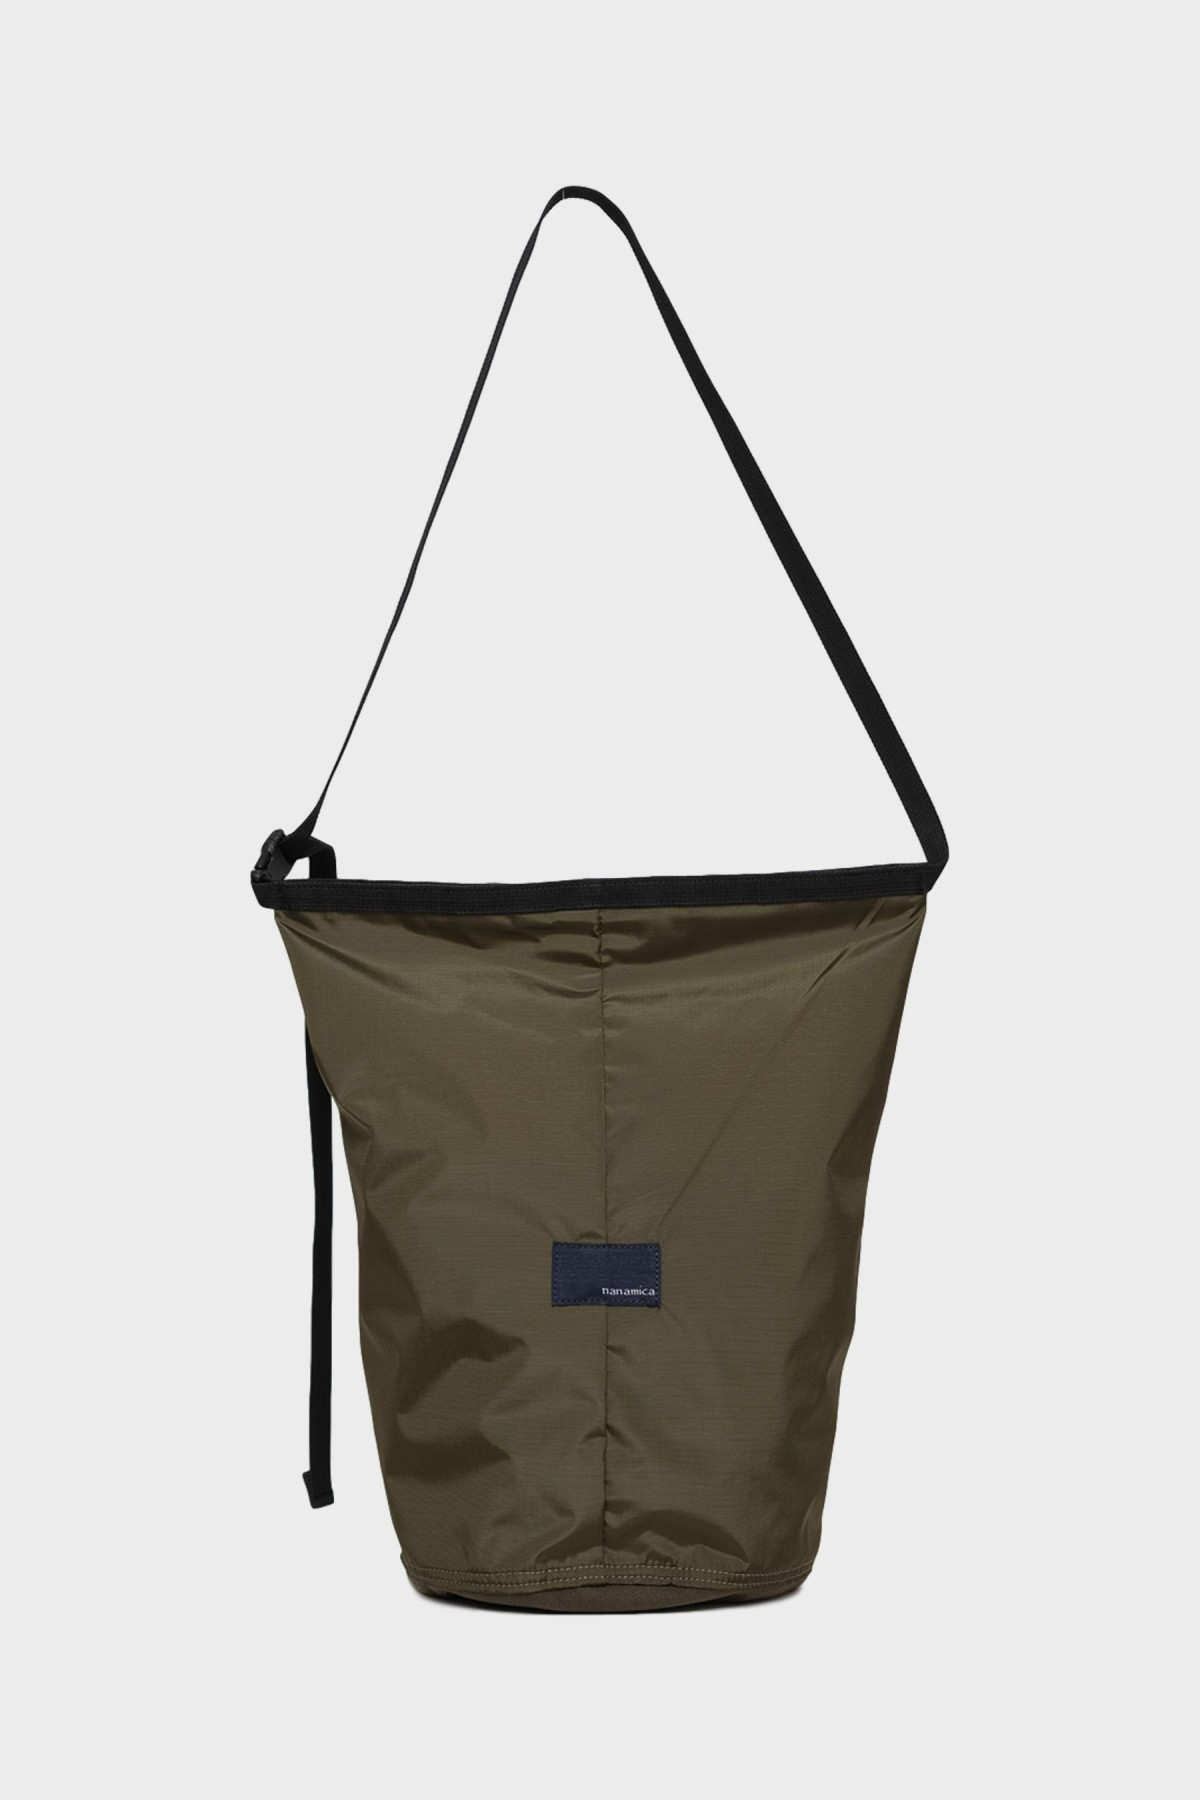 Nanamíca Utility Shoulder Bag in Olive